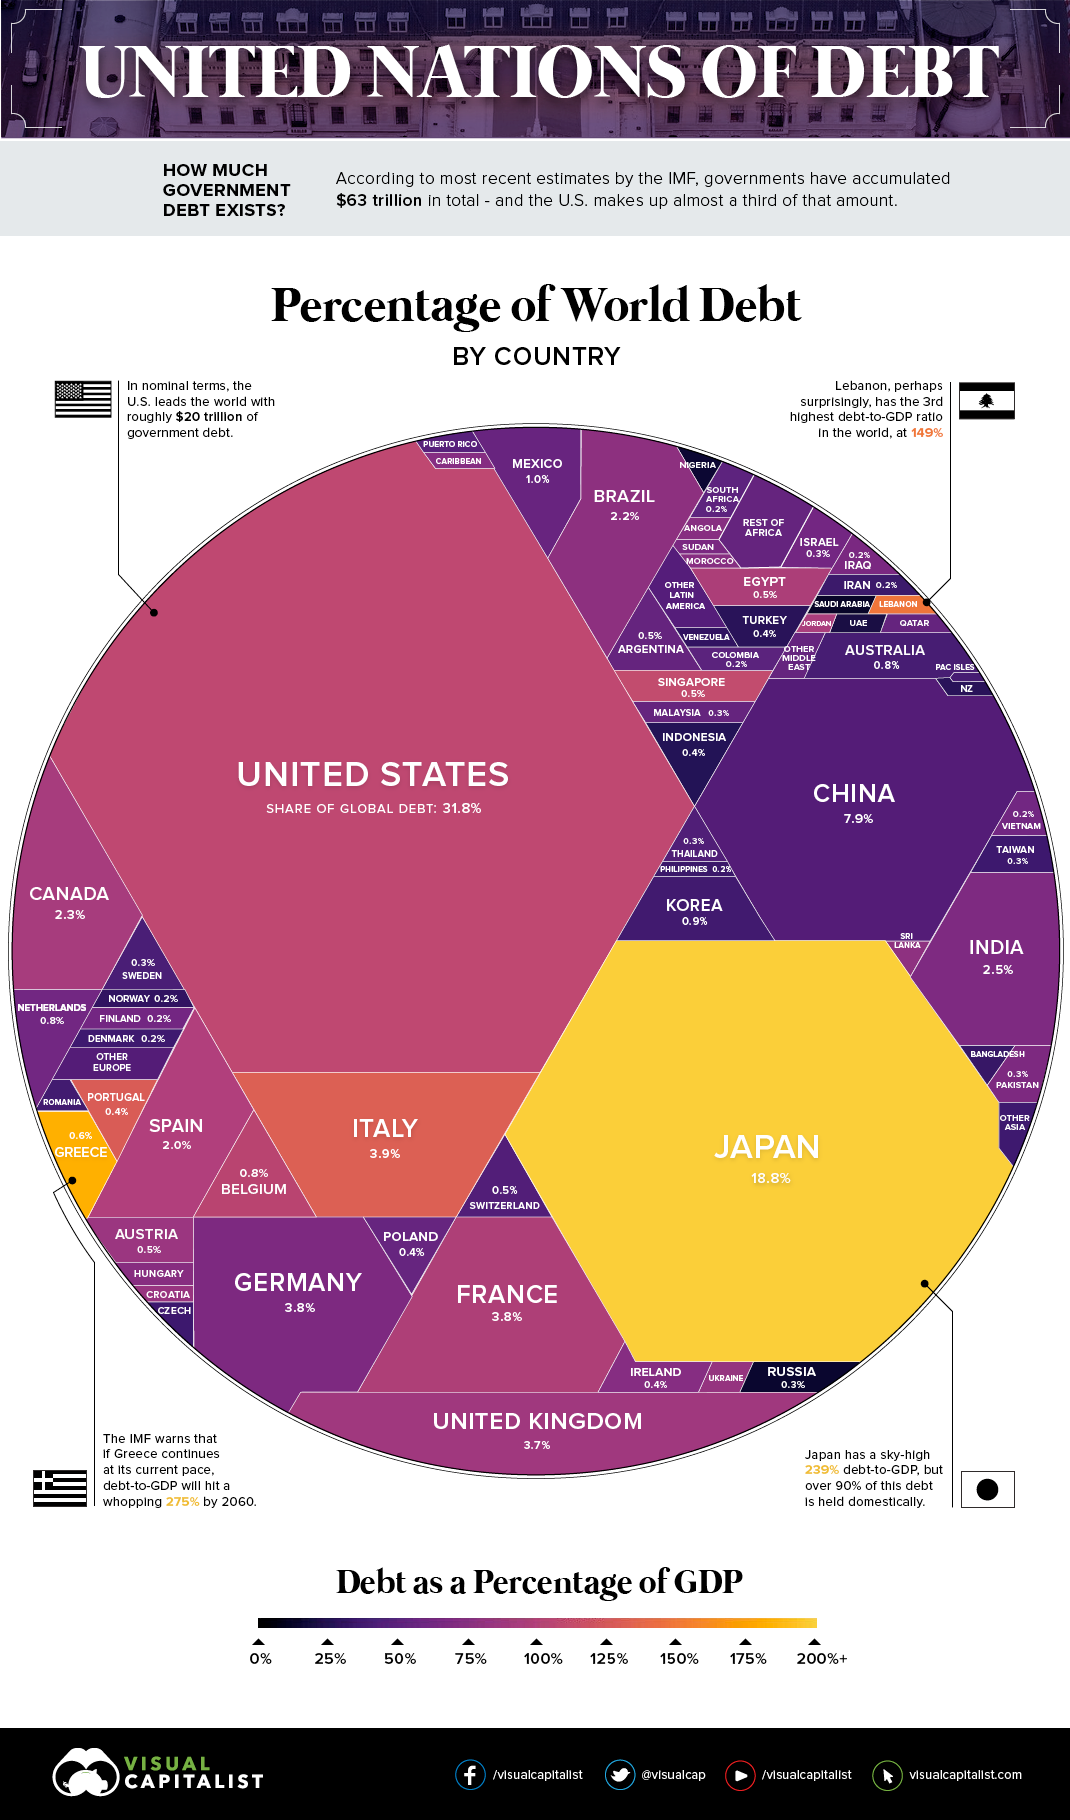 United Nations of Debt